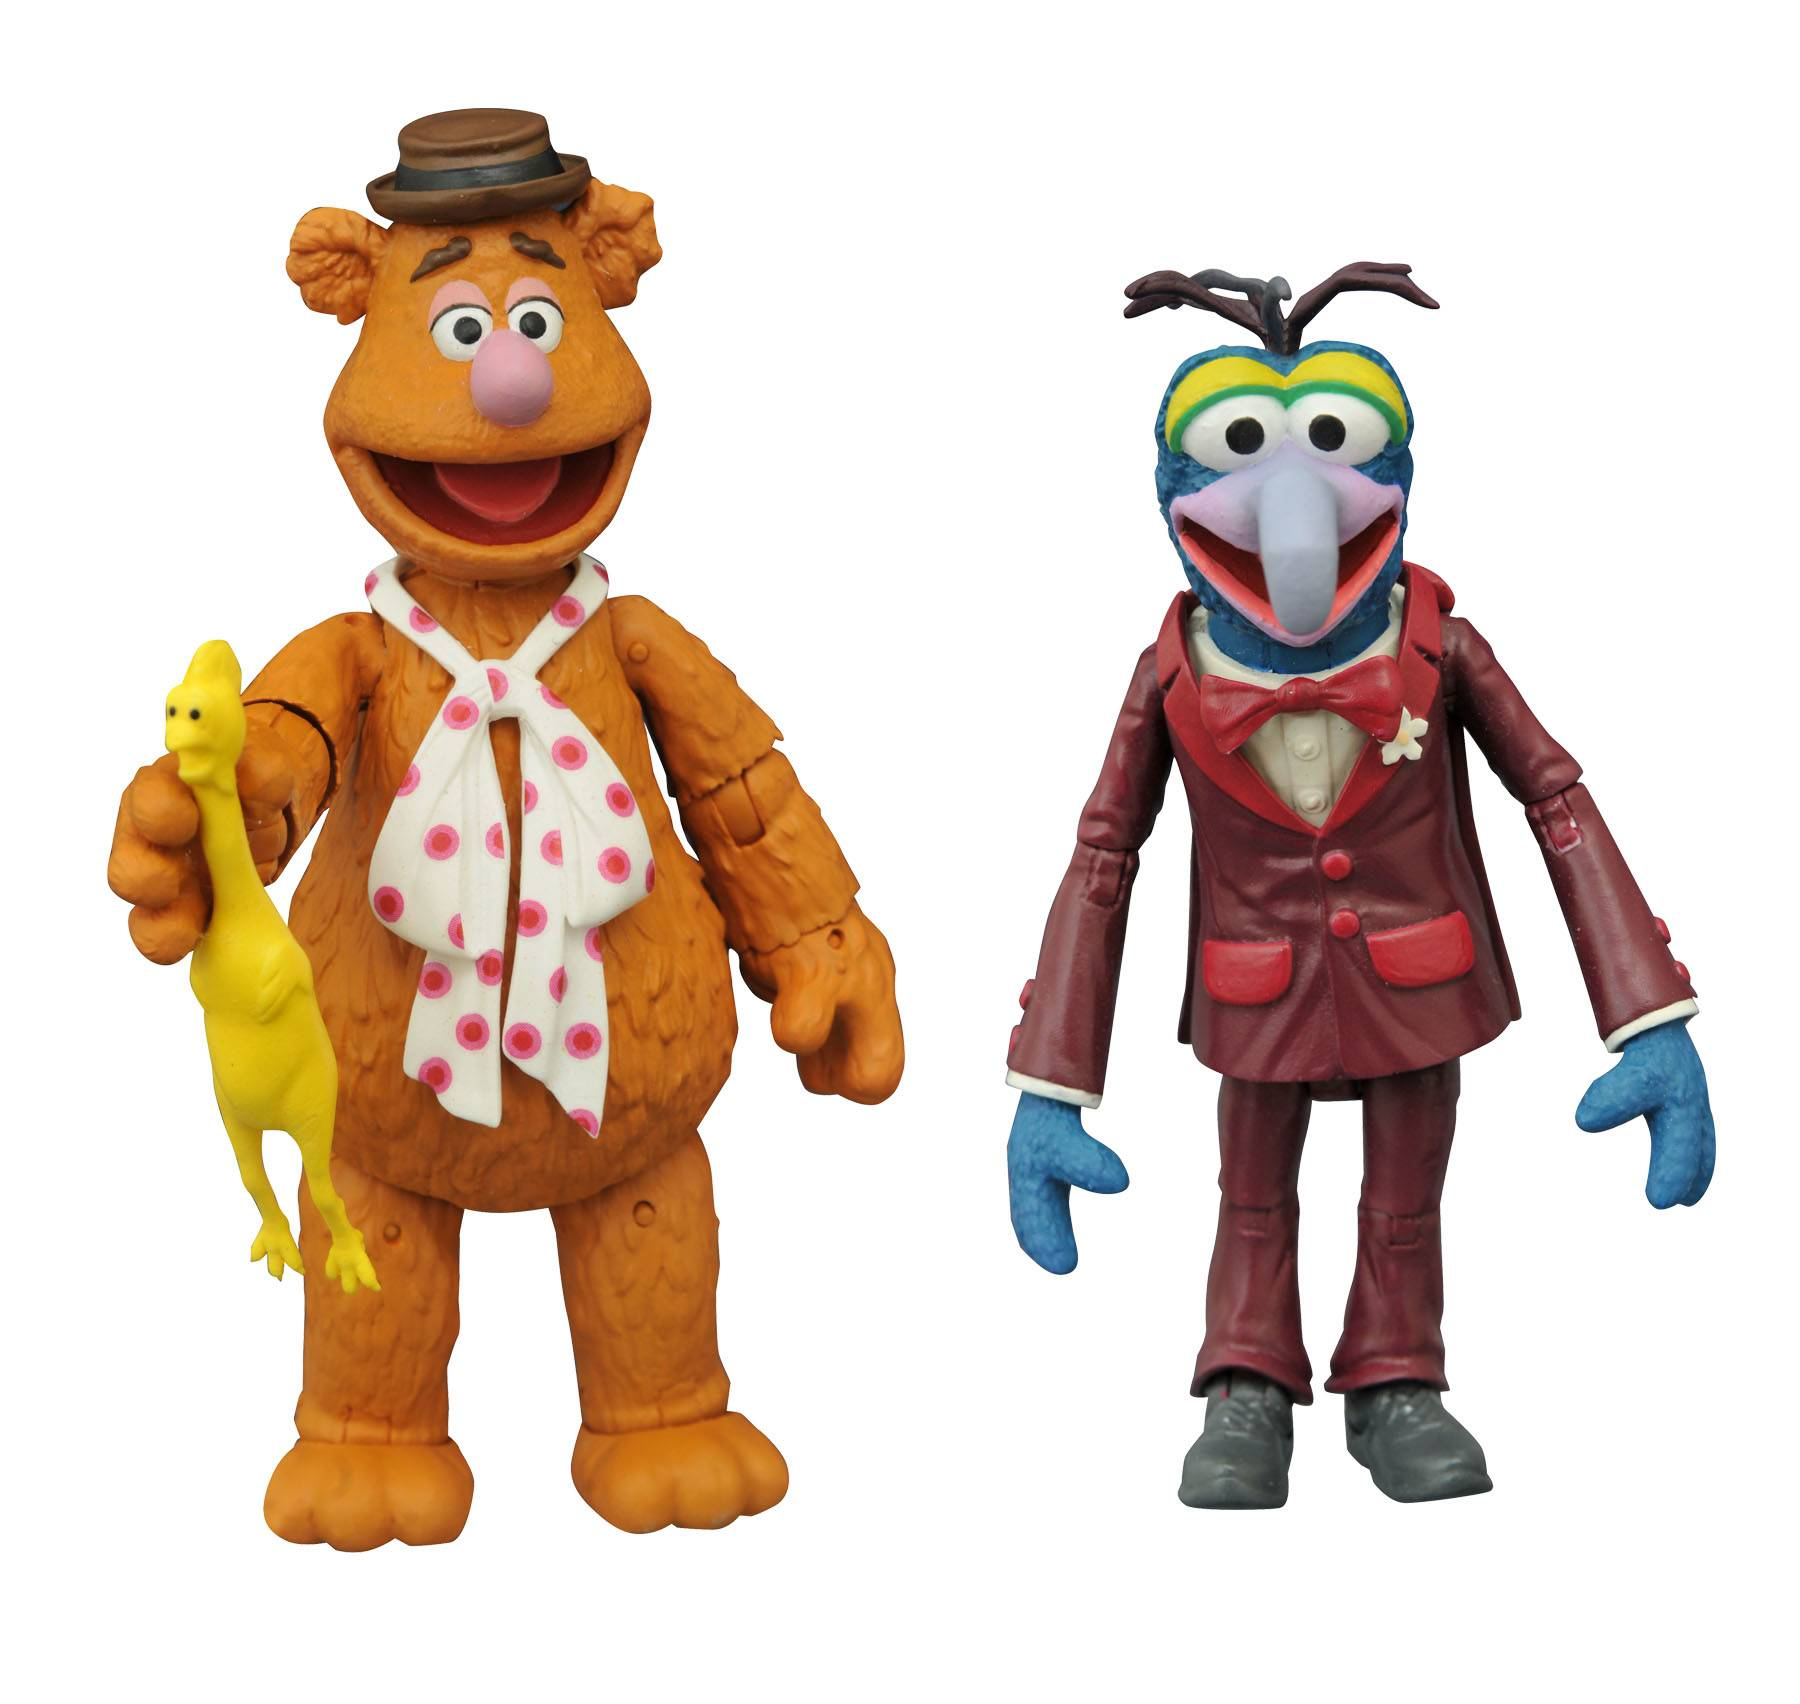 MUPPETS BEST OF SERIES 1 FIGURE ASST